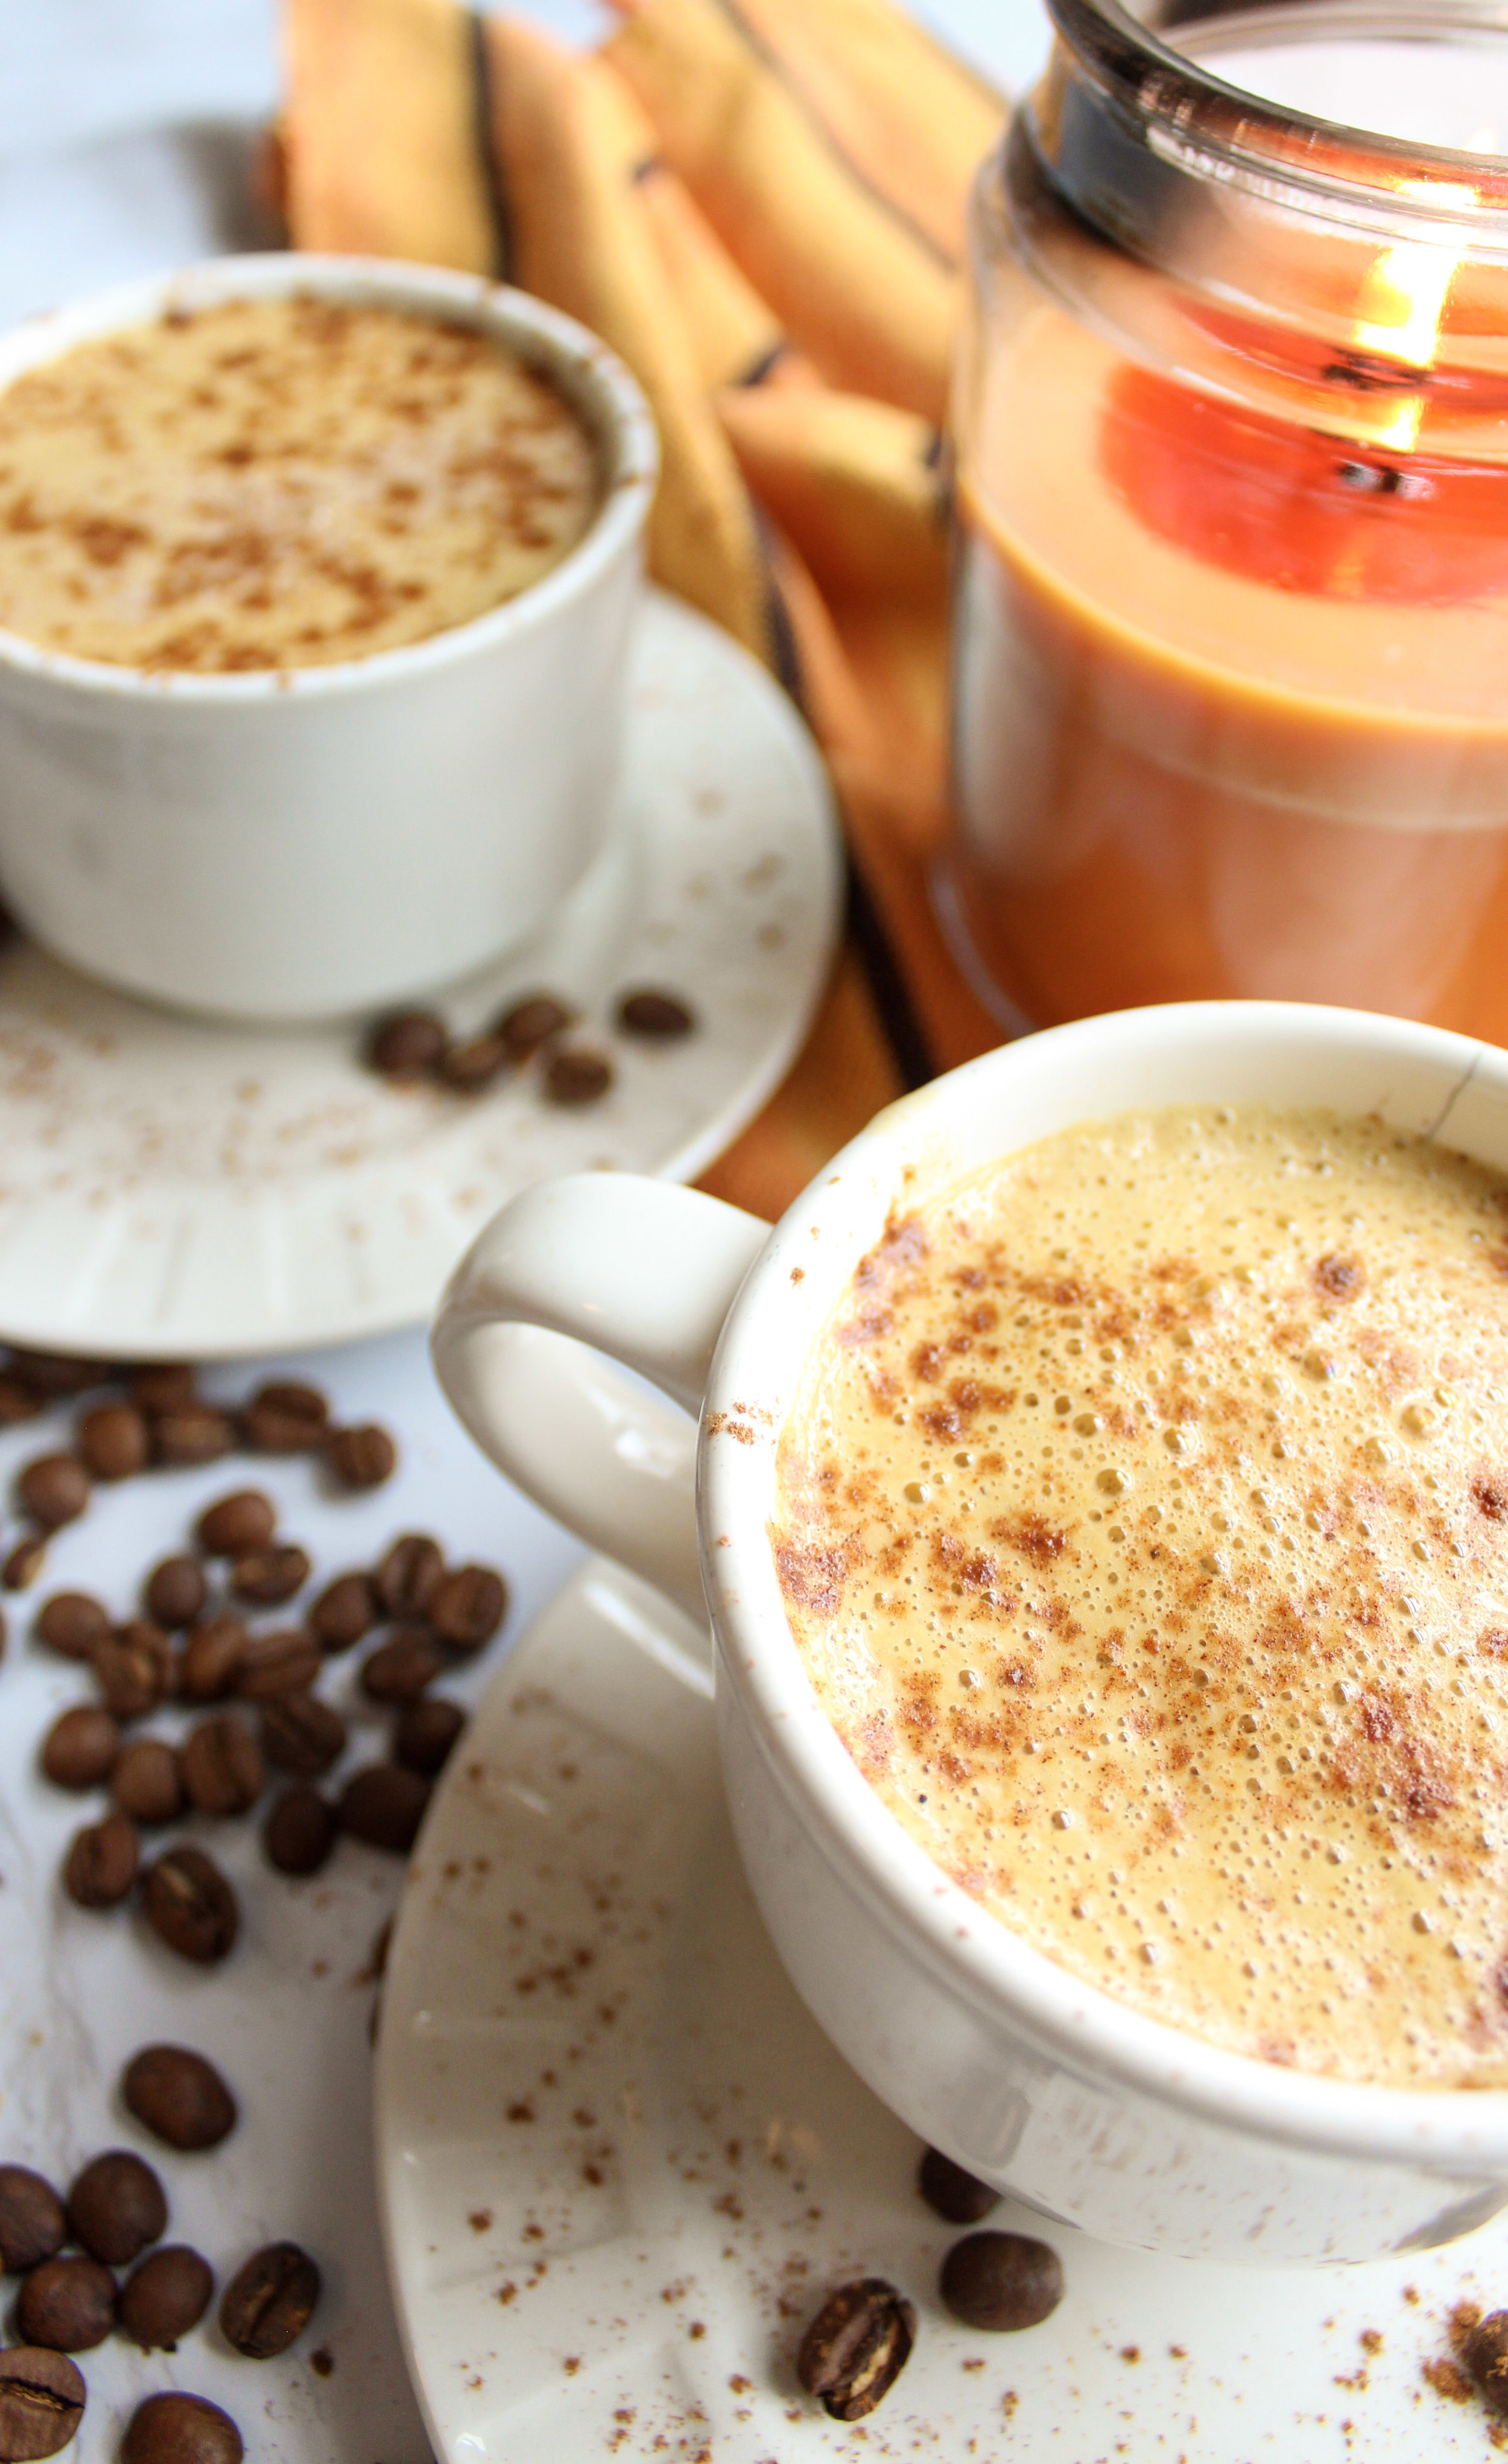 Creamy, easy vegan pumpkin spice latte recipe. How to make starbucks pumpkin spice latte at home. How to make vegan pumpkin spice latte. Made from canned coconut milk. Delicious and easy to make. Perfect vegan cozy fall drink. gluten free and dairy free. Sta #vegan #pumpkinspice #pumpkinspicelatte #veganlatte #dairyfree www.damndeliciousvegan.com